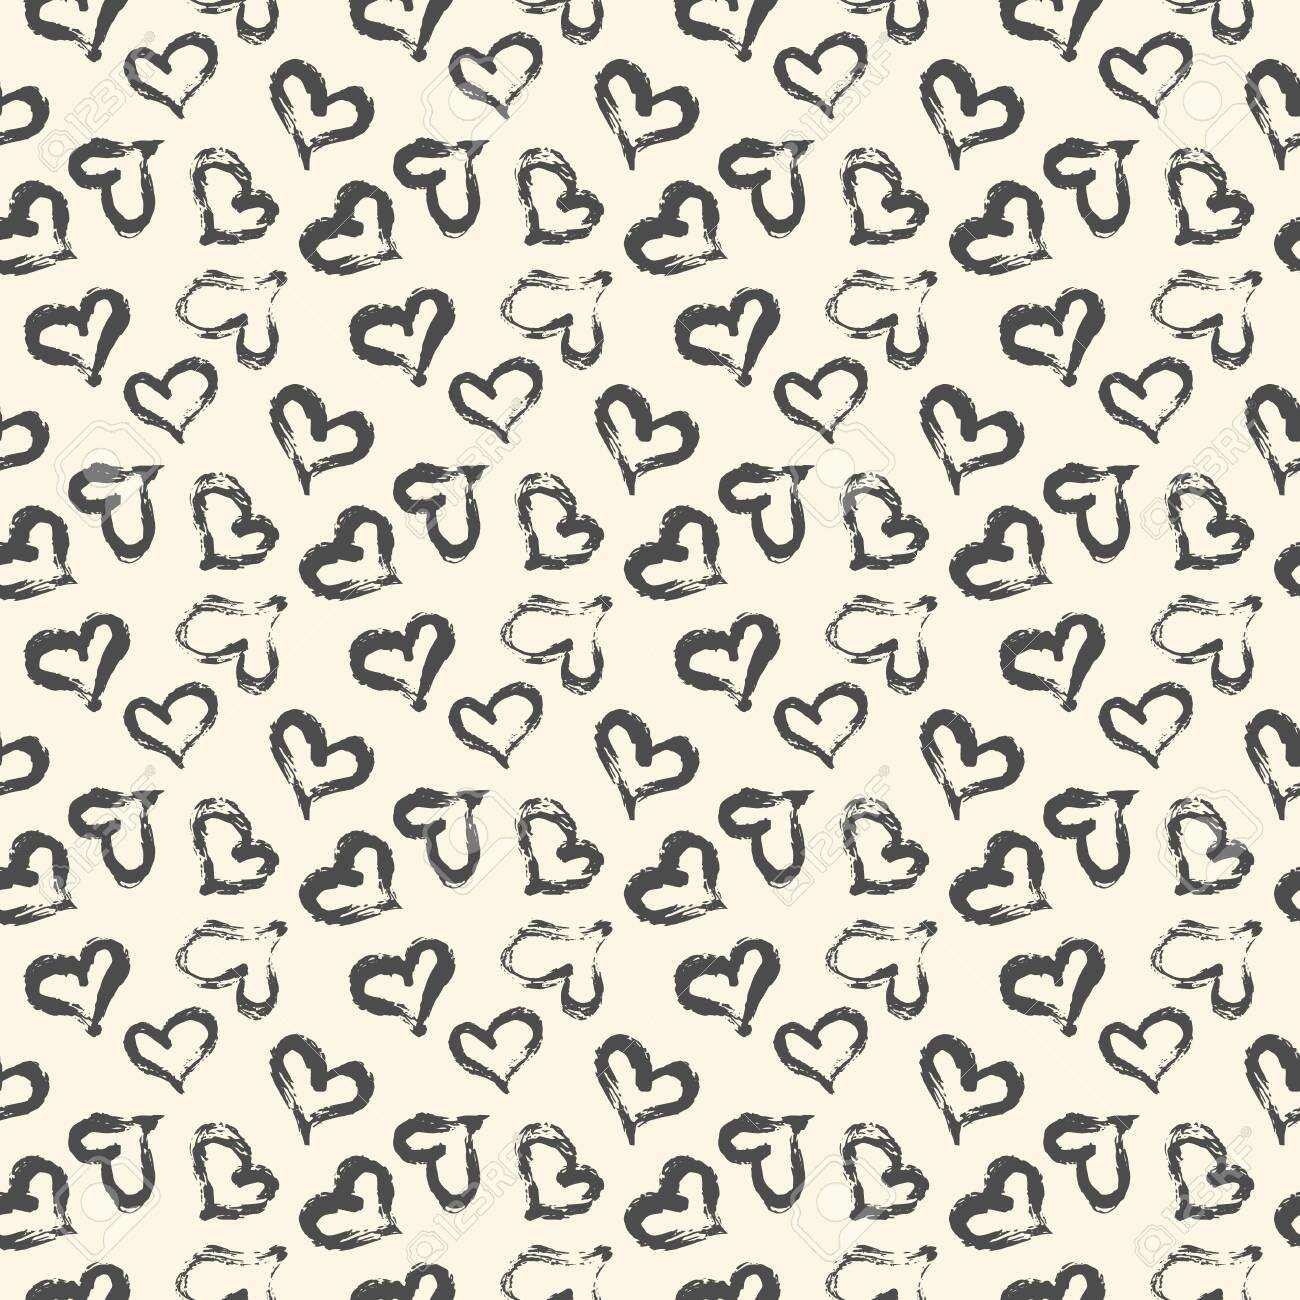 Seamless heart pattern hand painted with ink brush. Graphic design element. Scrapbooking, Valentine's Day card, wallpaper, baby shower, wedding invitation. Vintage style tileable vector illustration - 123689371